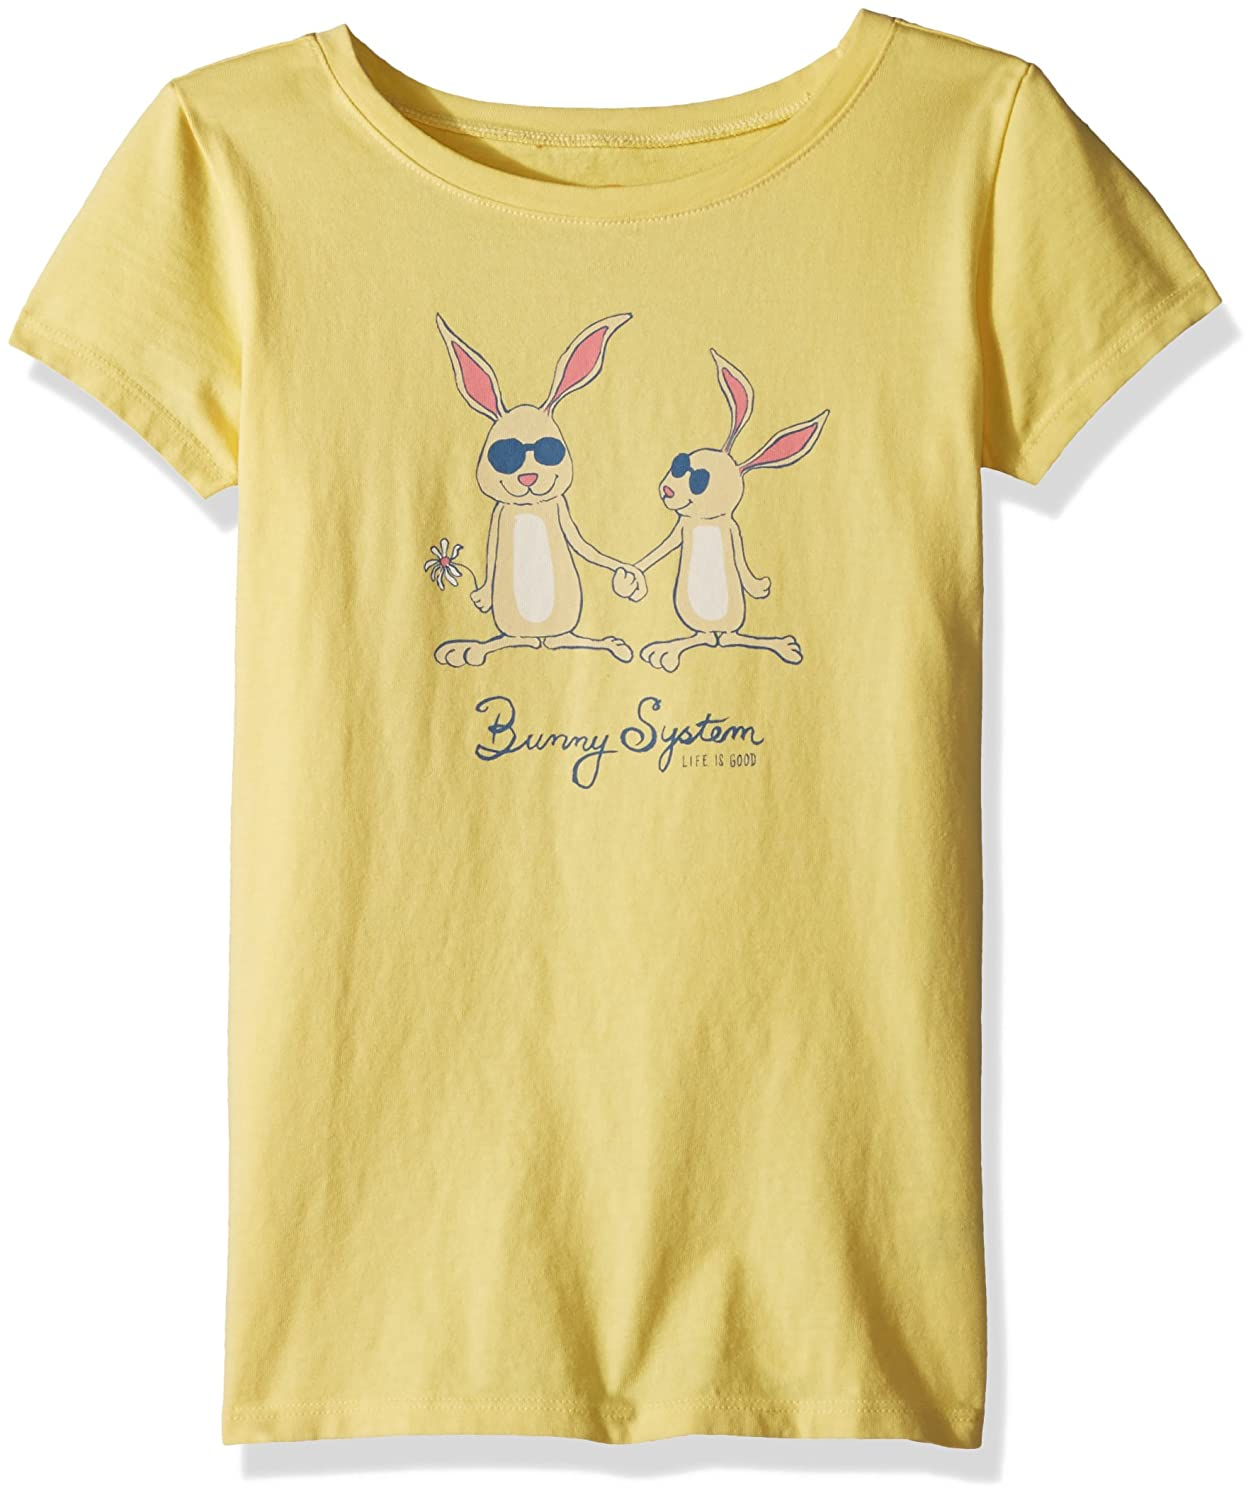 Life is Good Girls Crusher Graphic T-Shirts Collection